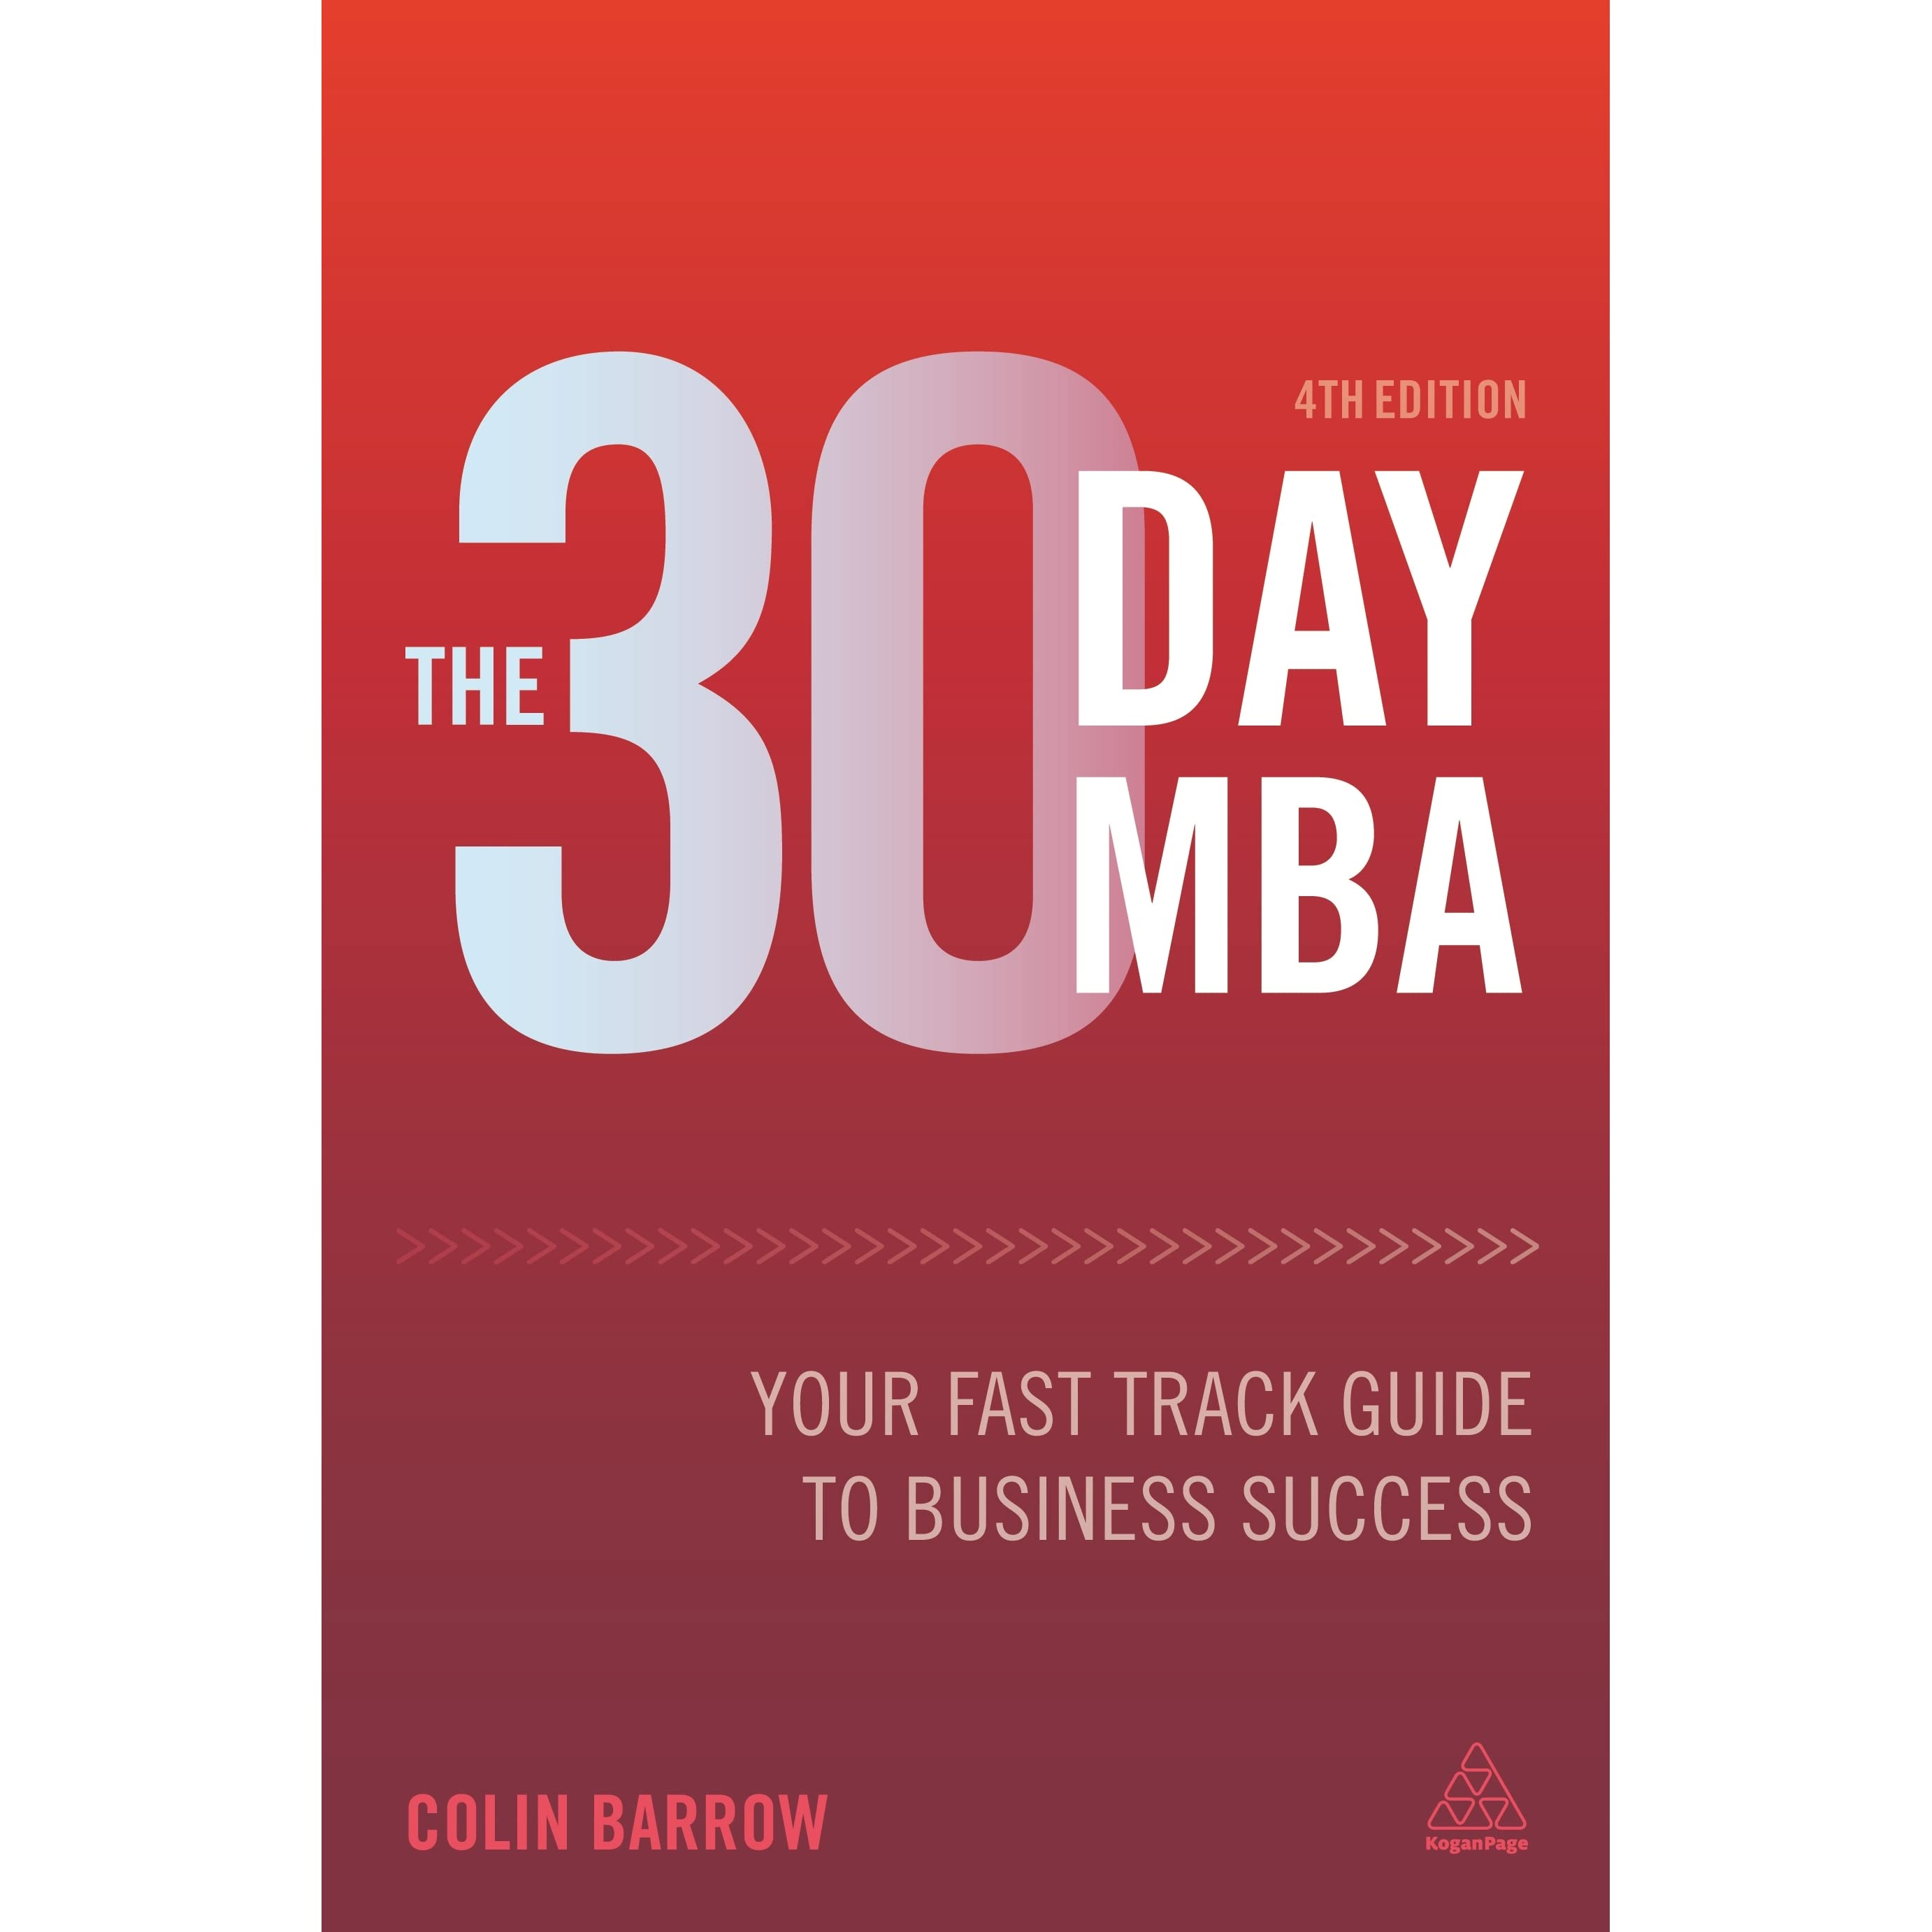 The 30 day mba your fast track guide to business success by colin the 30 day mba your fast track guide to business success by colin barrow fandeluxe Images